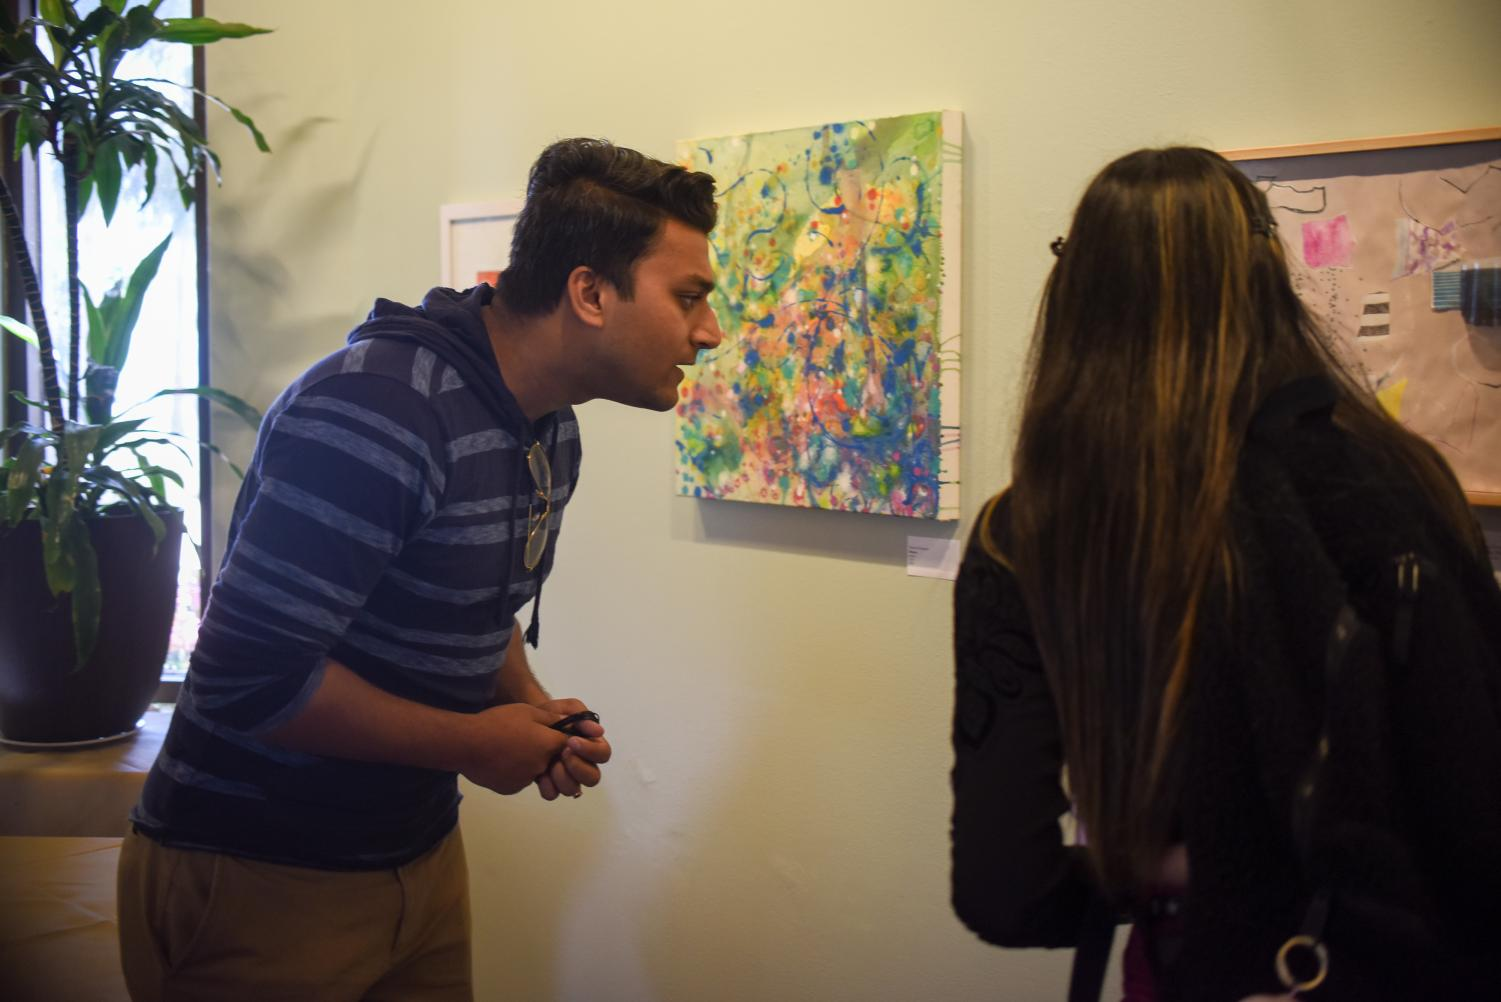 Romit Mukherjee looks at the Non-Objective Art exhibit on Tuesday, April 2, 2019, in the John Dunn dining hall at City College in Santa Barbara, Calif.